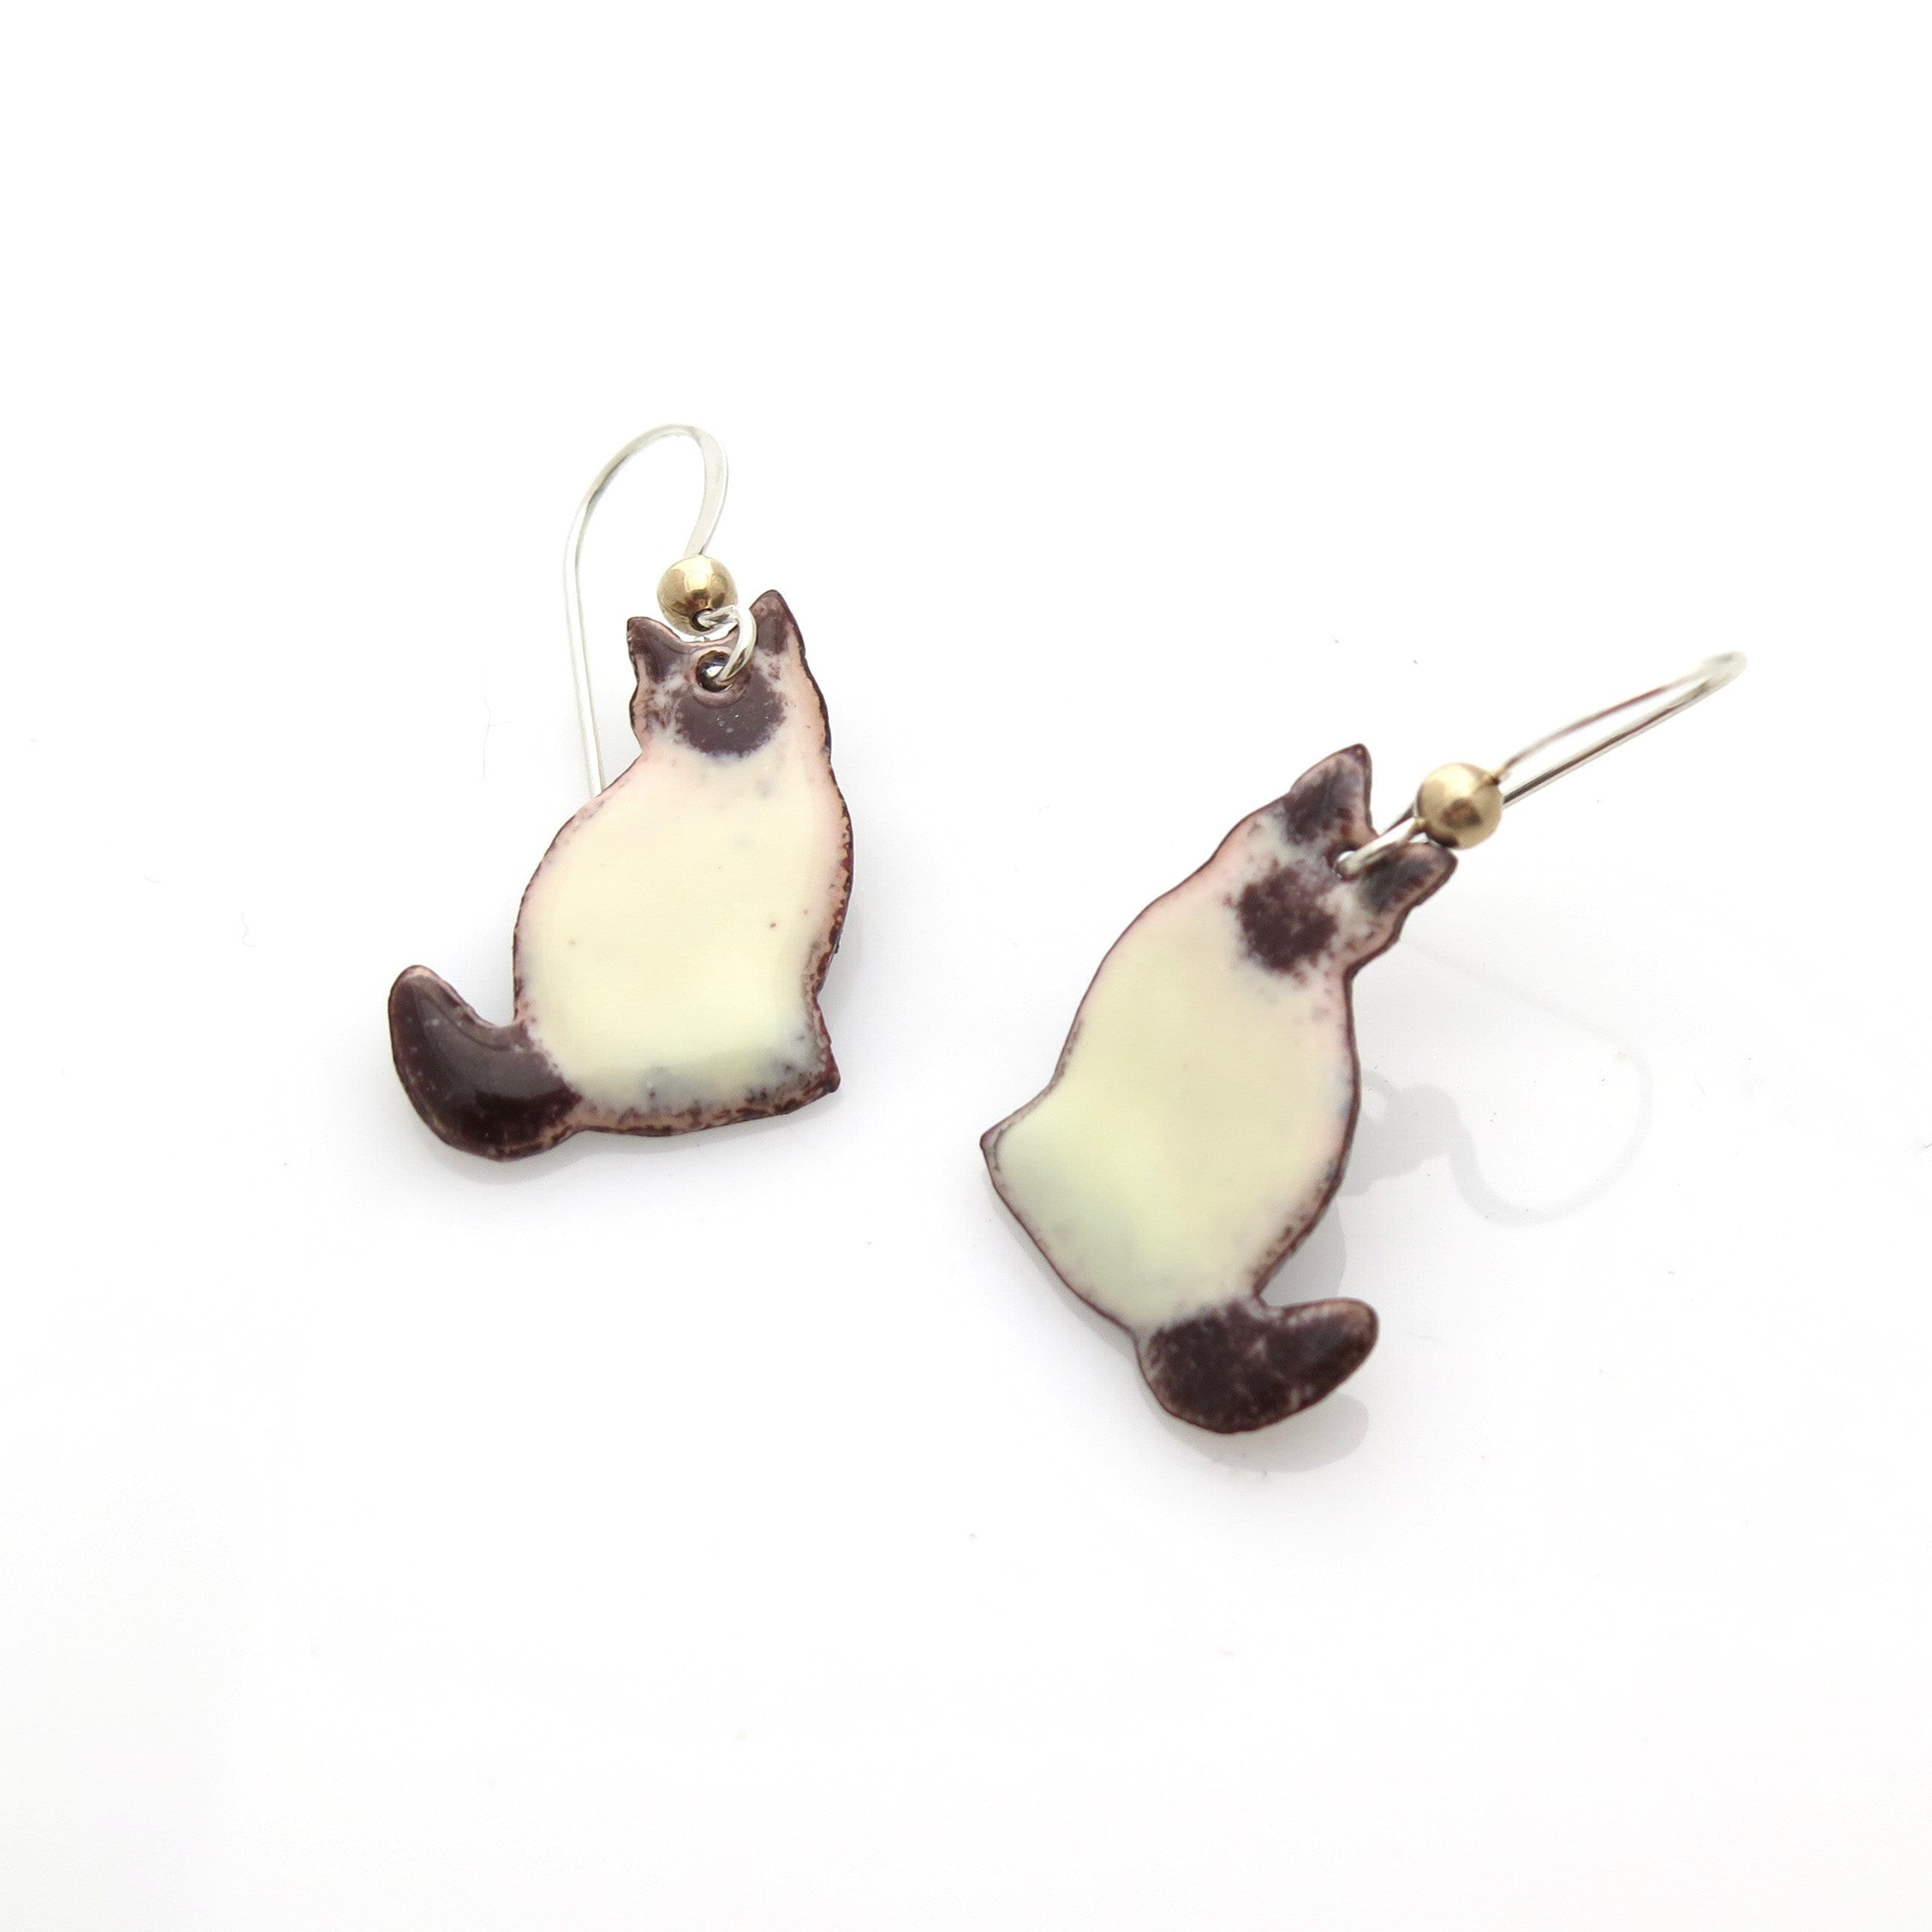 shipping copper earrings jewelry lover free handmade cat fullxfull listing jewellery enamel siamese lmqv himalayan il